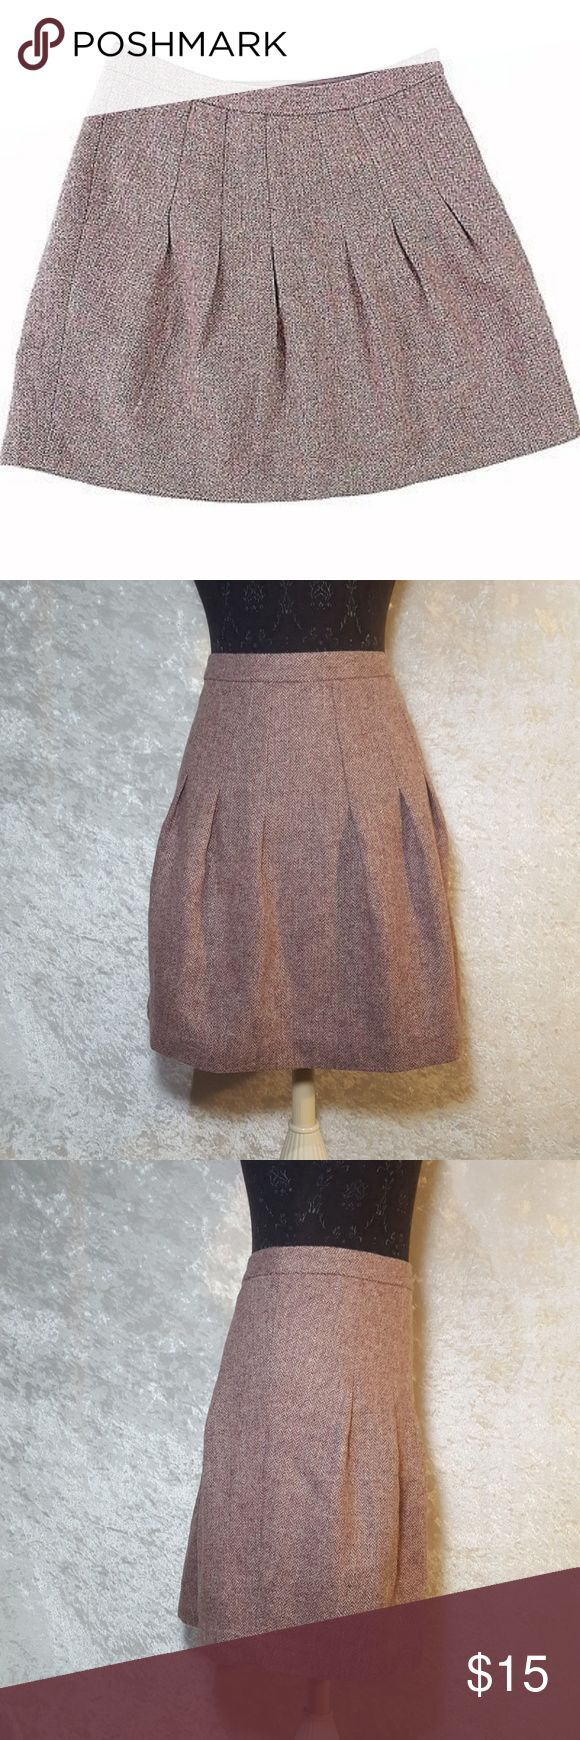 Gap Wool Skirt Size 10 by GAP skirt. 100% wool skirt with polyester lining.  Cute for fall and winter.  Tweed look with wine, lavender, and mauve color blend.  Used condition not brand new.  Feel free to ask questions or request more photos.  I do bundle discounts and accept offers.  Thanks for looking and happy poshing! GAP Skirts